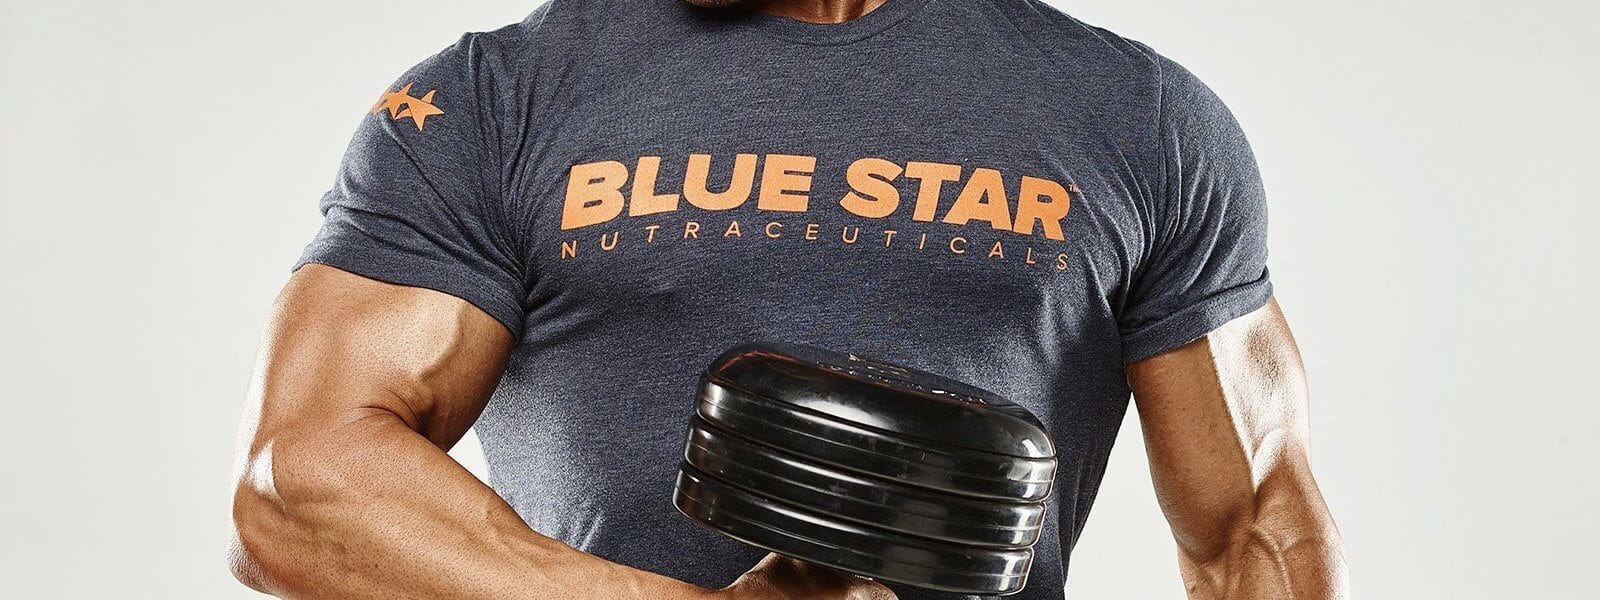 The Best from Blue Star Nutraceuticals